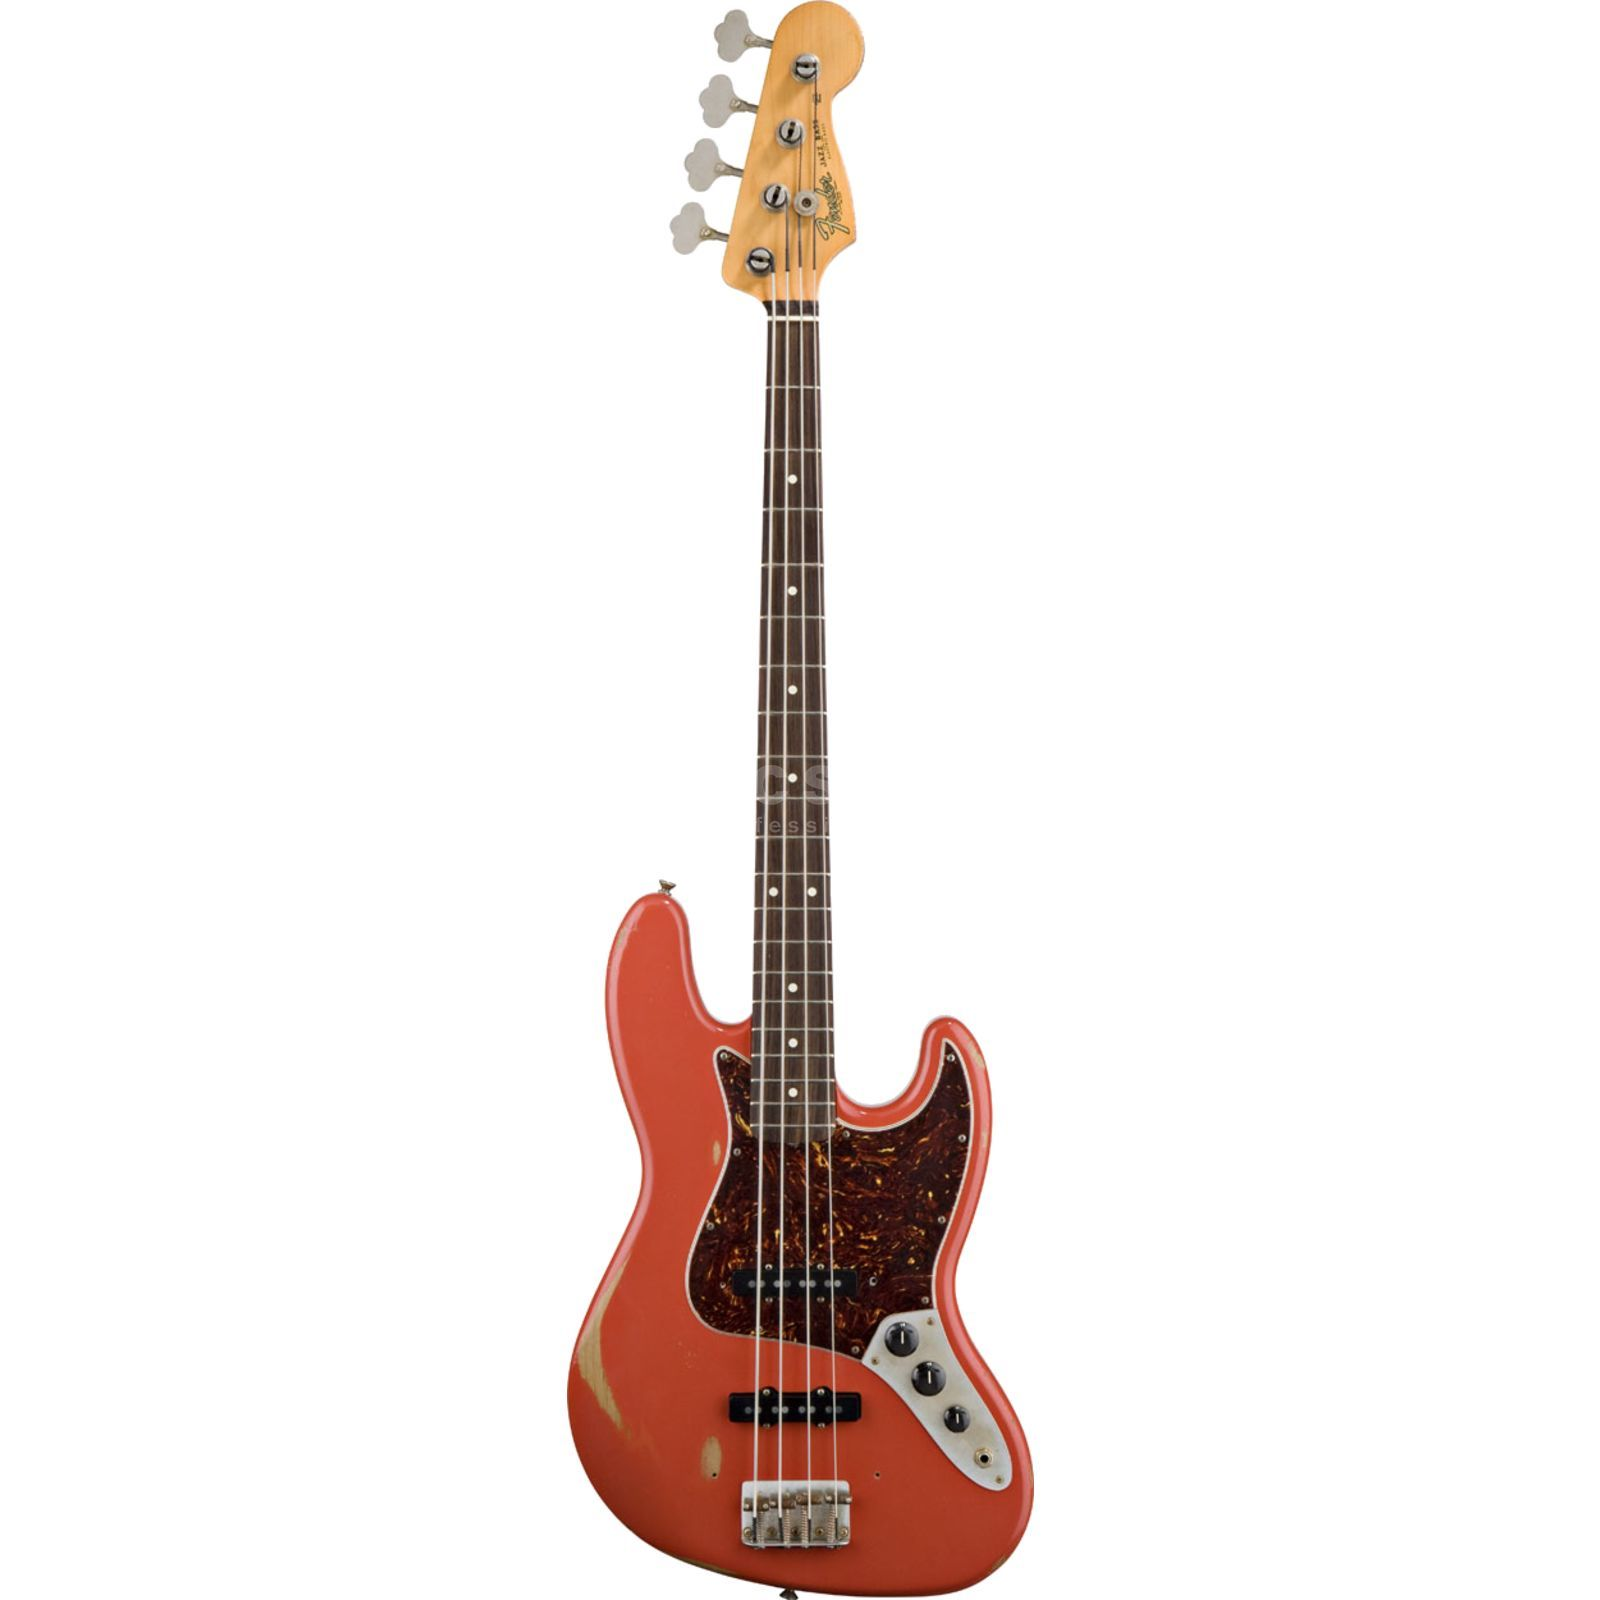 Fender Road Worn 60s Jazz Bass, Fiest a Red   Product Image